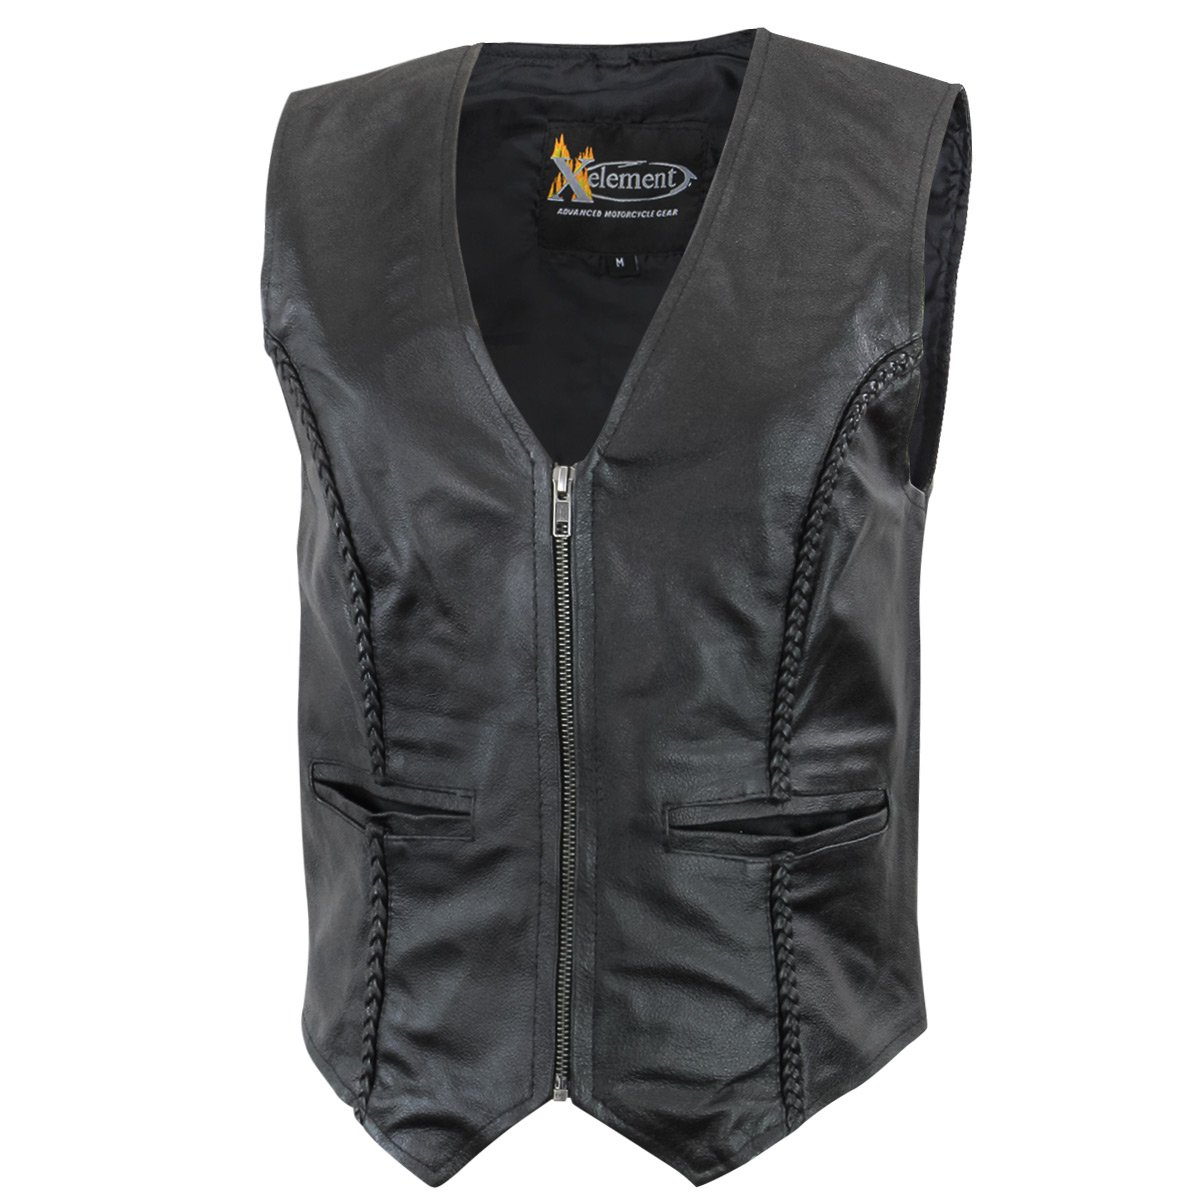 Xelement XS1246Z Women's Black Braided Leather Motorcycle Vest - Black / Medium